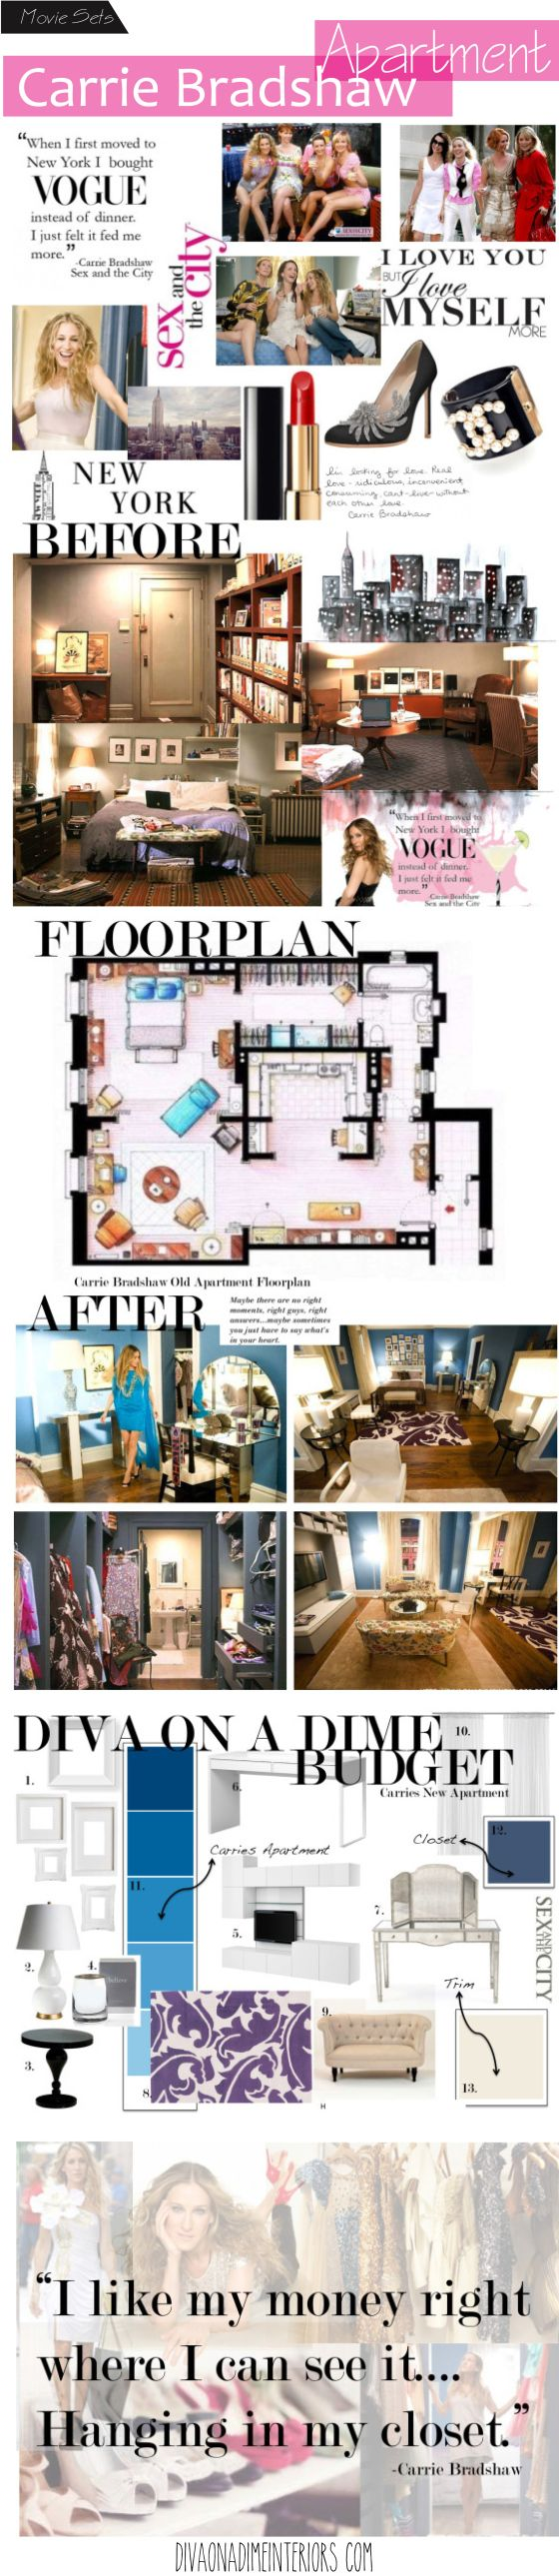 Carrie bradshaw apartment awesome interior design blog - Carrie bradshaw apartment layout ...